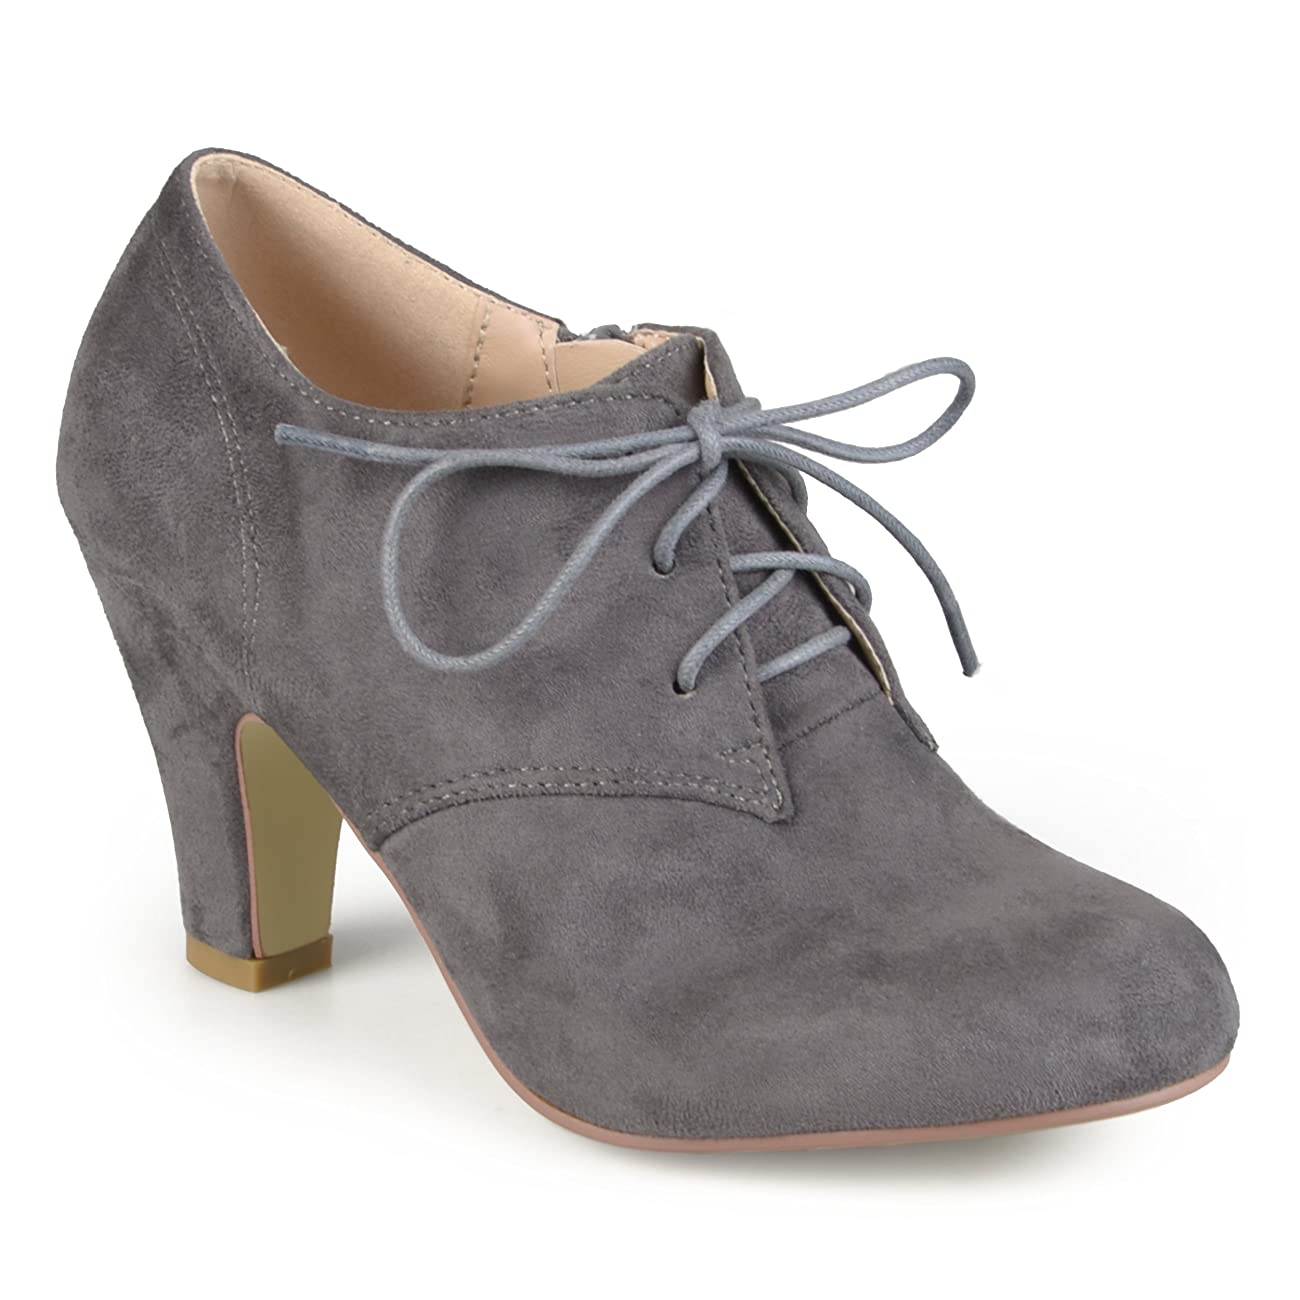 Brinley Co. Womens Vintage Round Toe High Heel Lace-up Faux Suede Booties 1